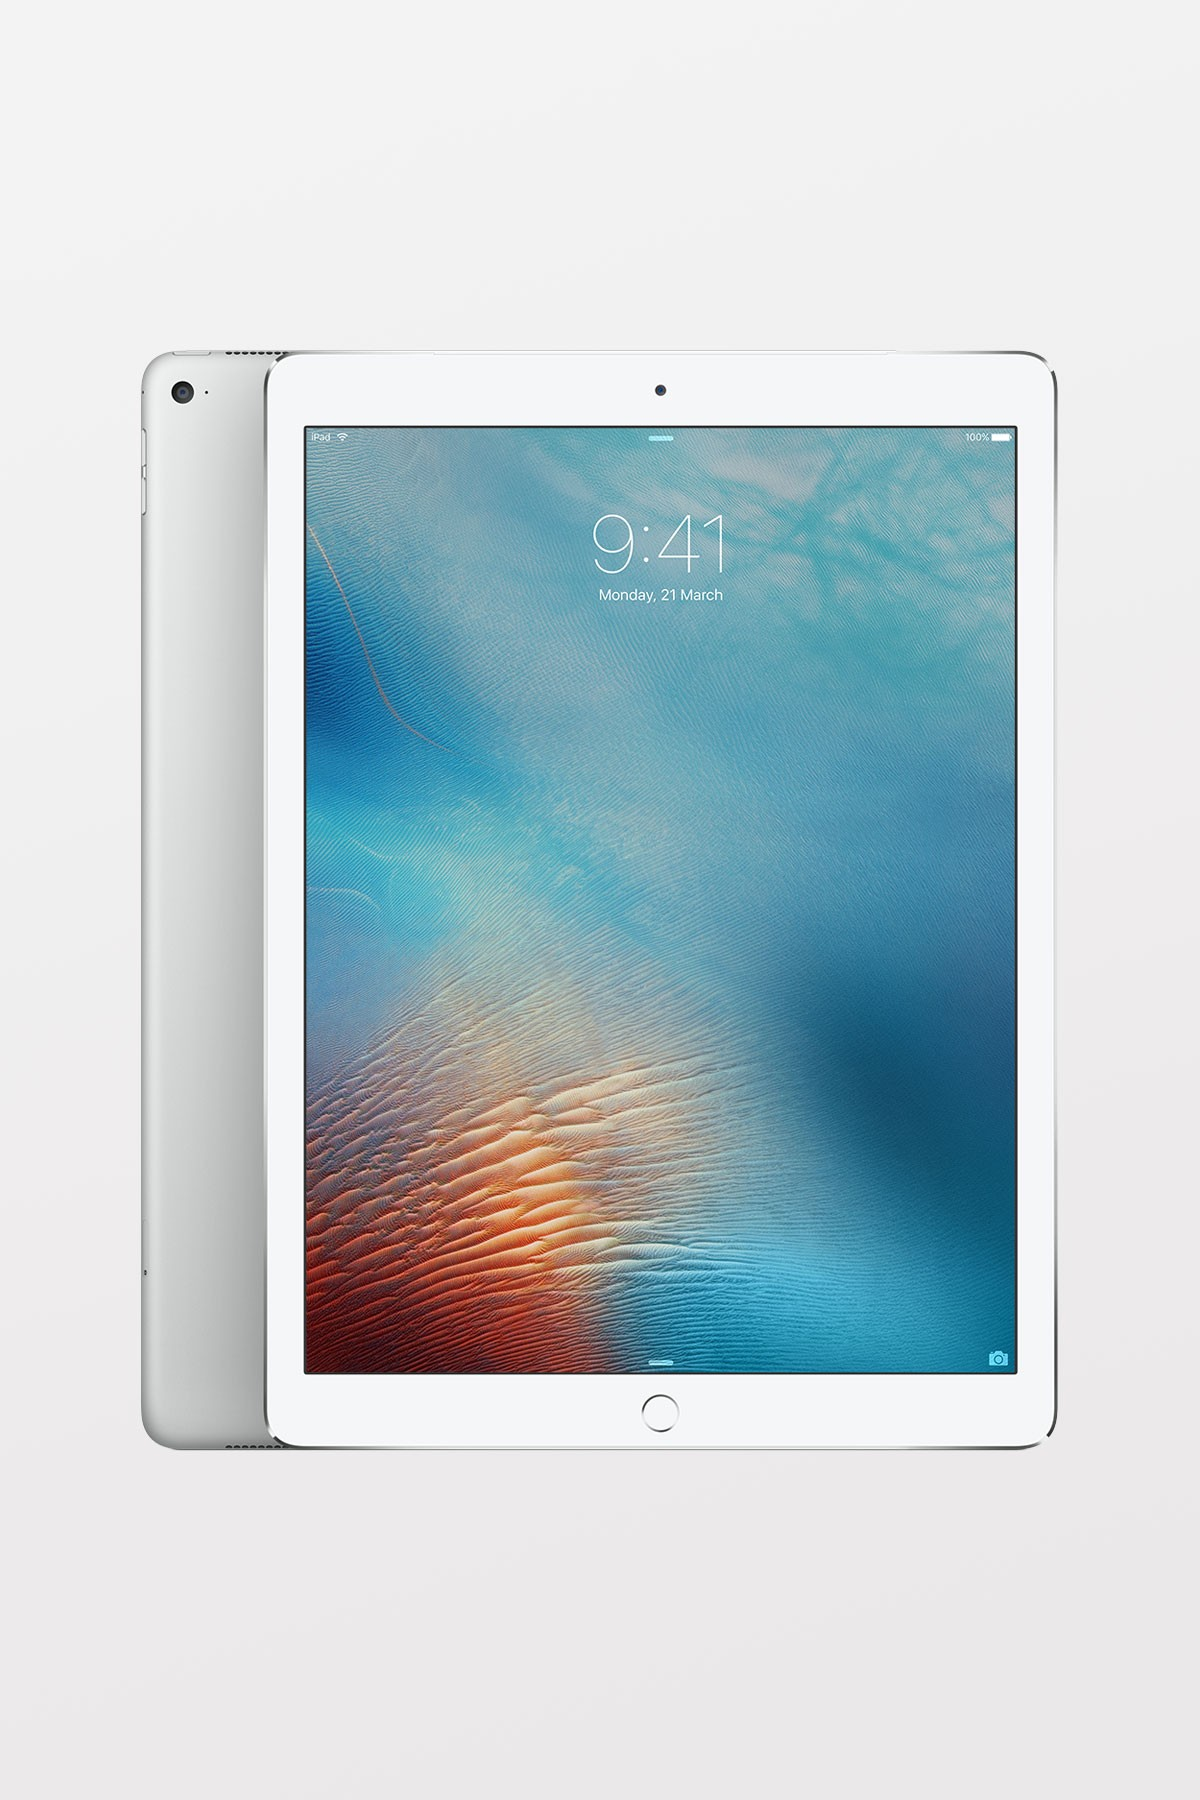 Apple iPad Pro 12.9-inch Wi-Fi + Cellular 256GB - Silver